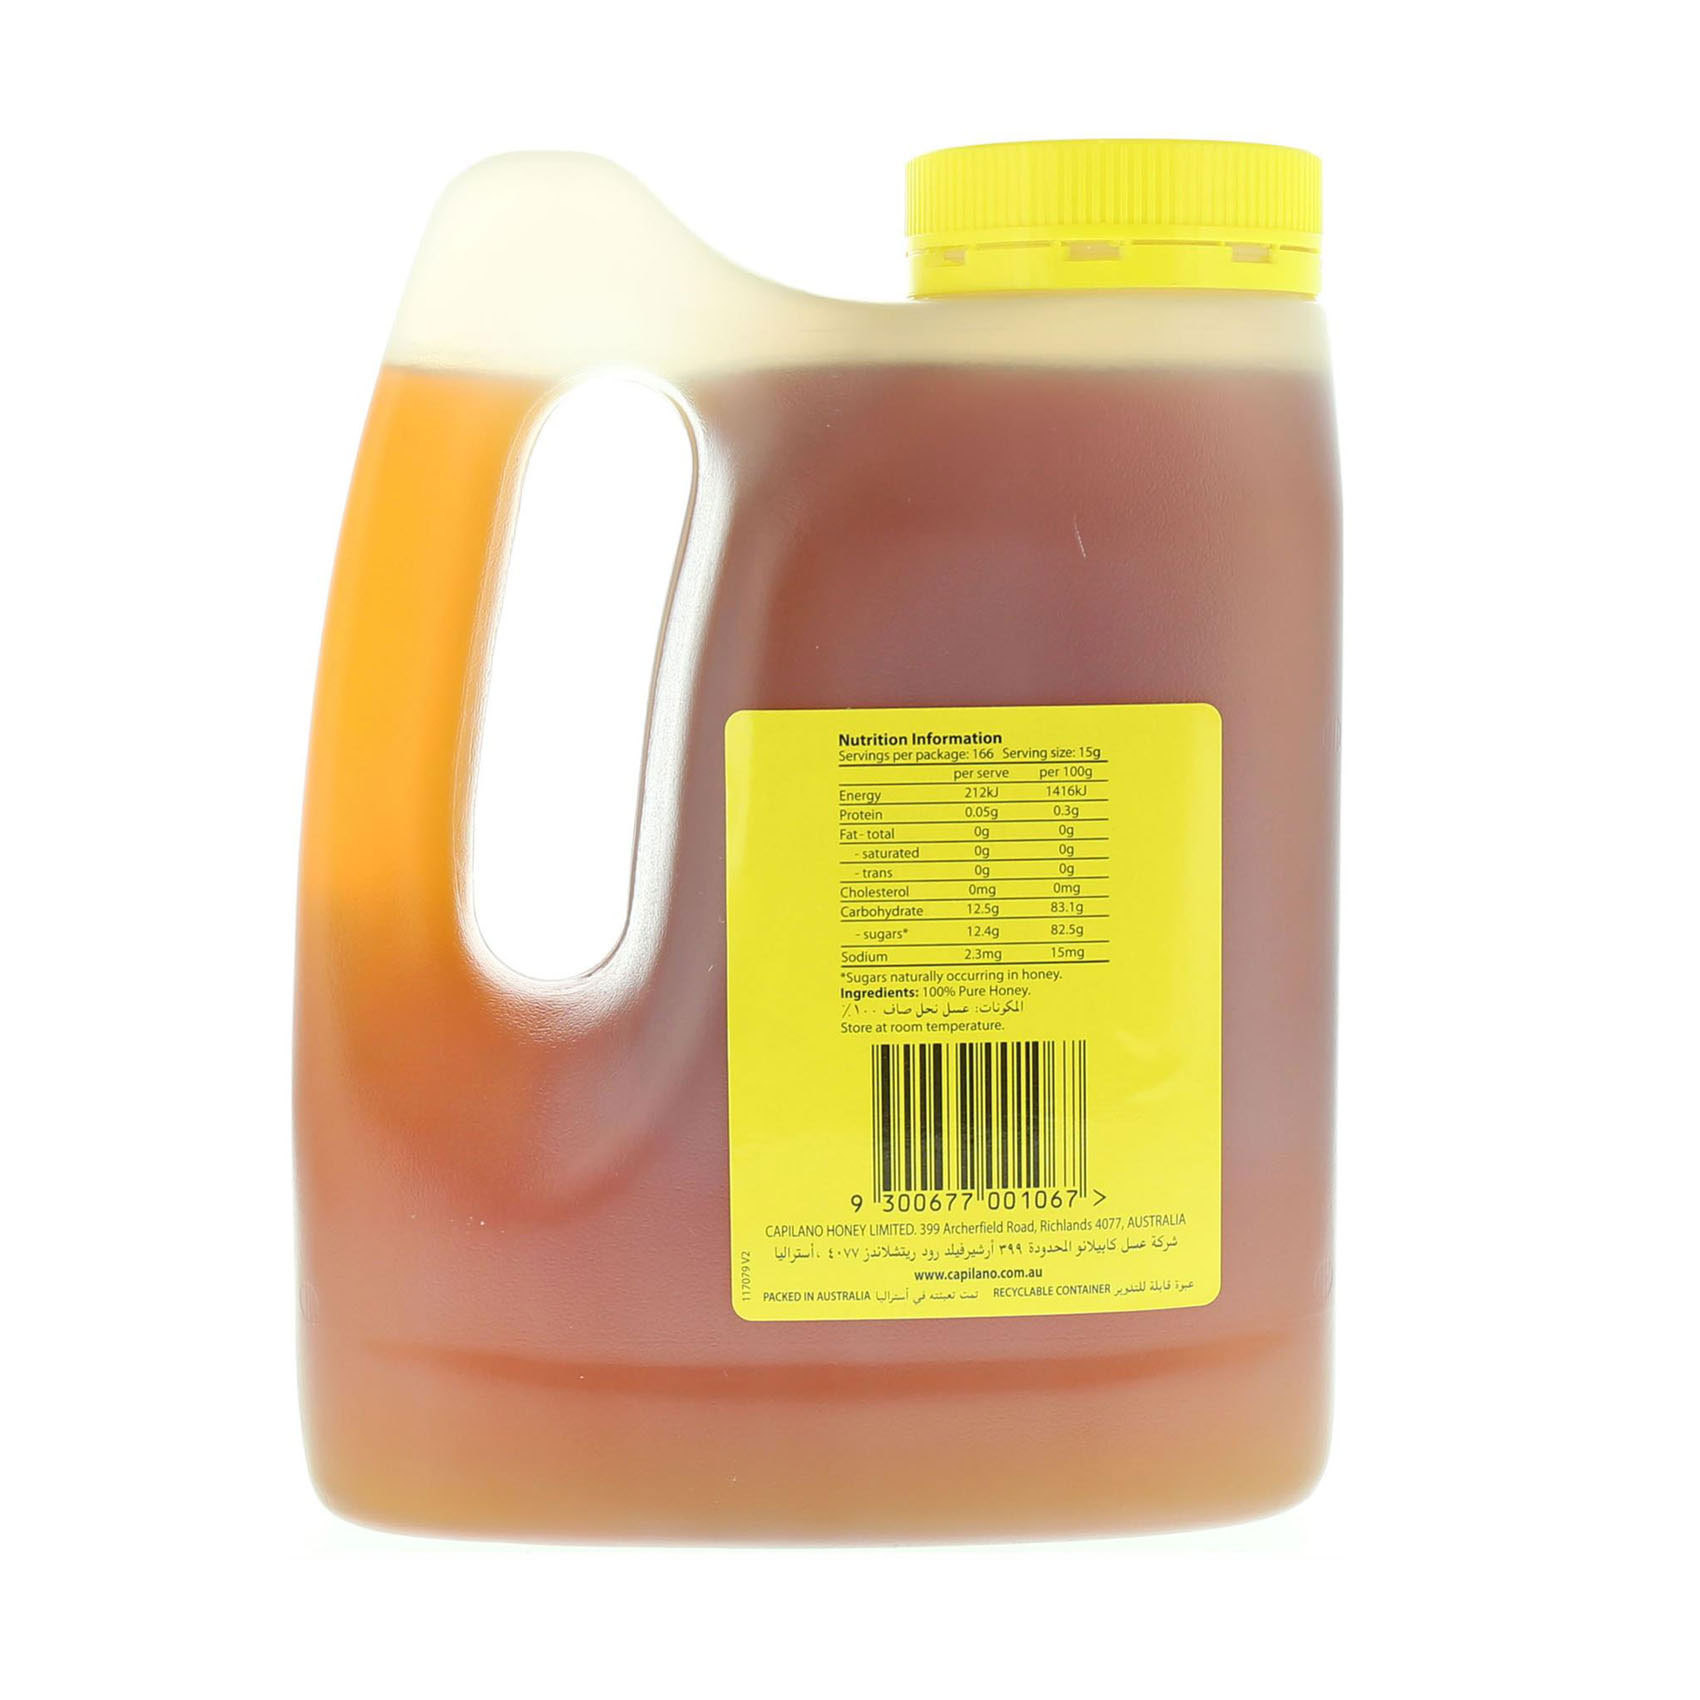 CAPILANO HONEY HANDI PACK 2.5KG